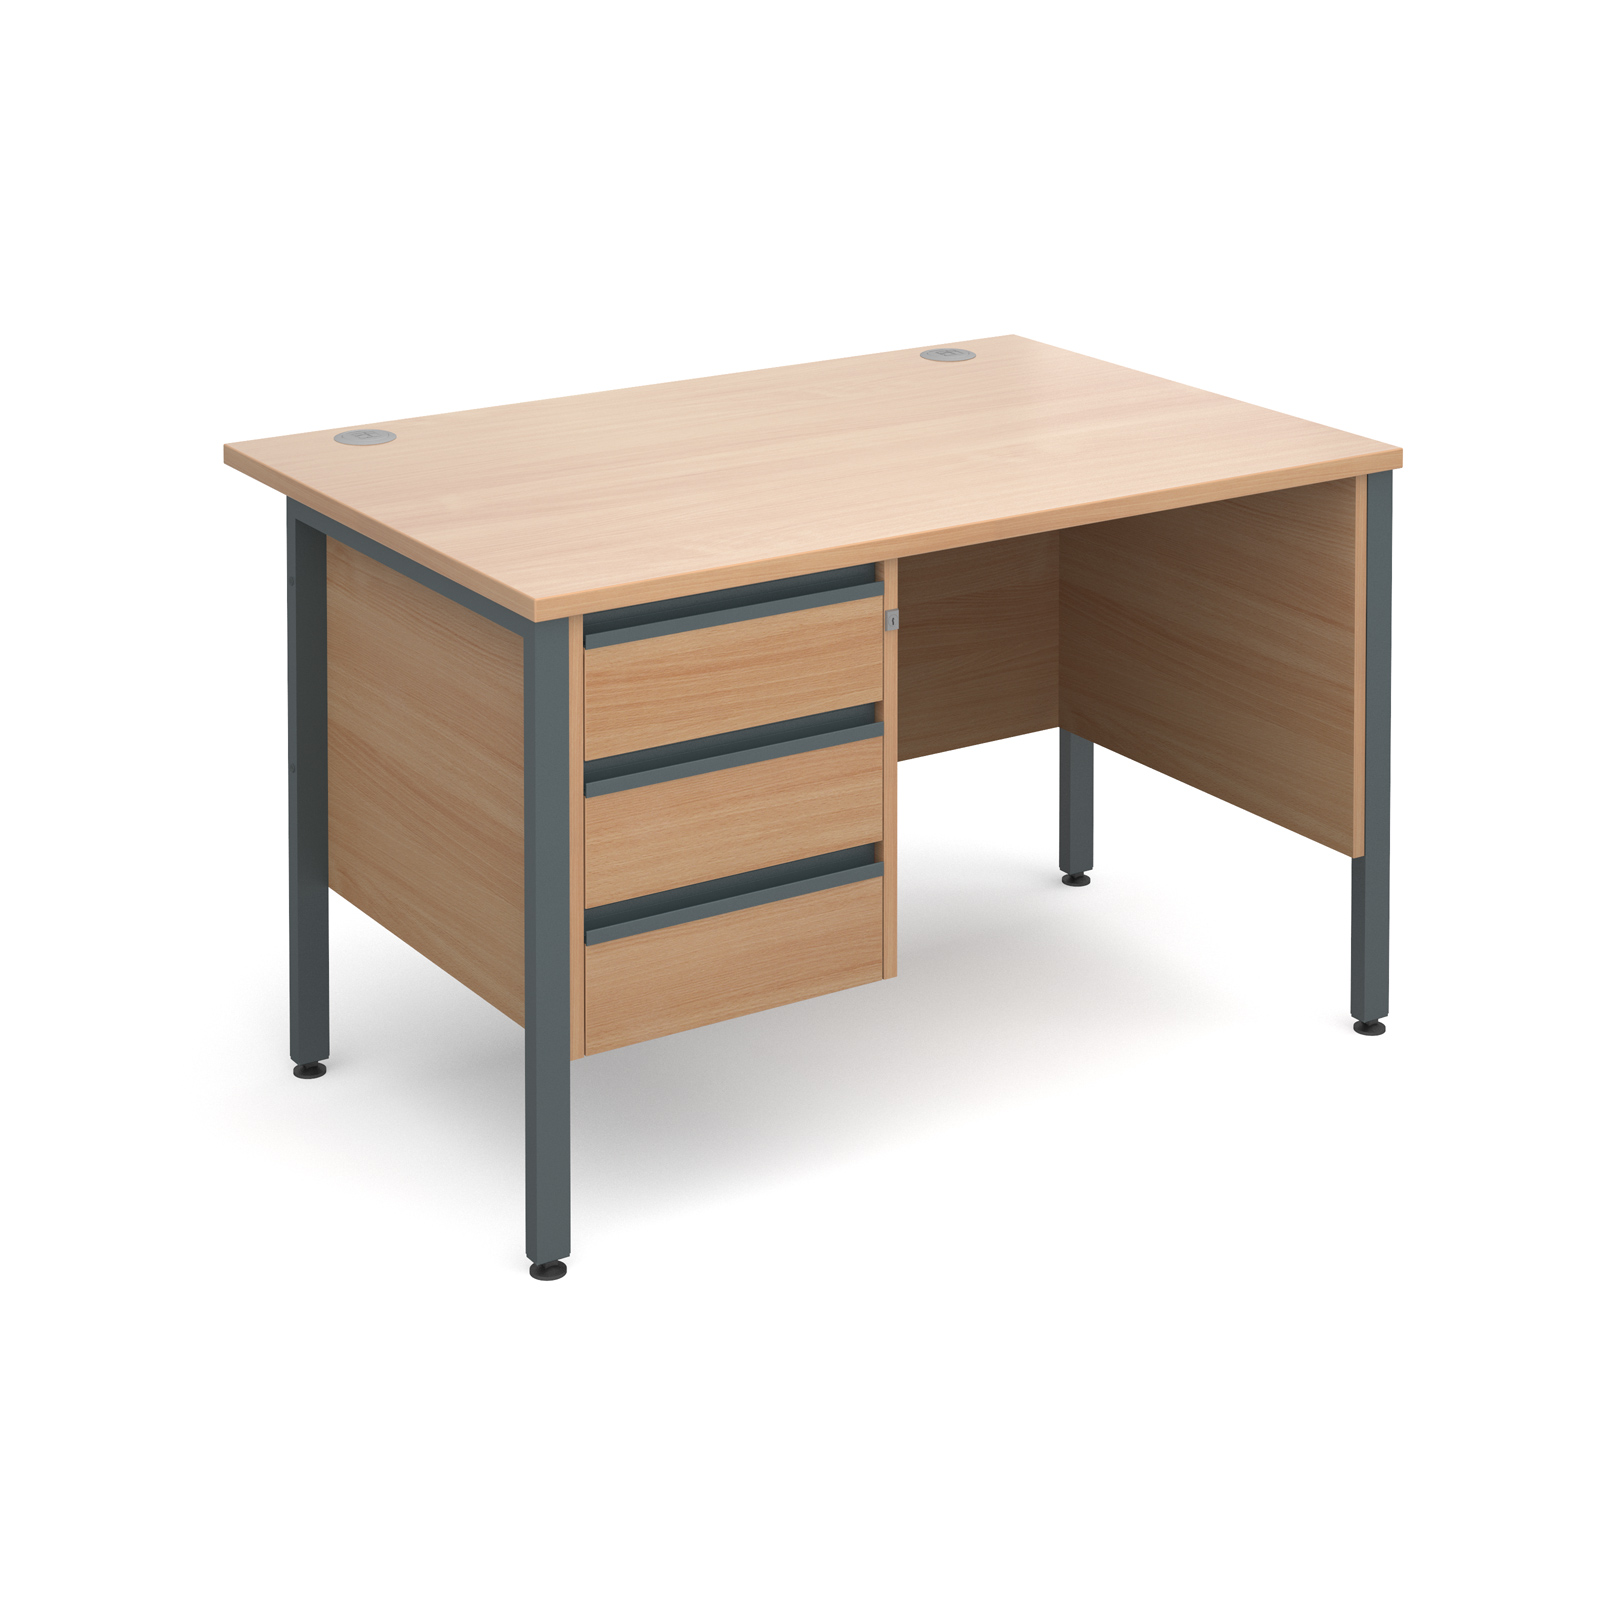 Maestro 25 Gl Straight Desk With 3 Drawer Pedestal 1200mm Graphite H Frame Beech Top